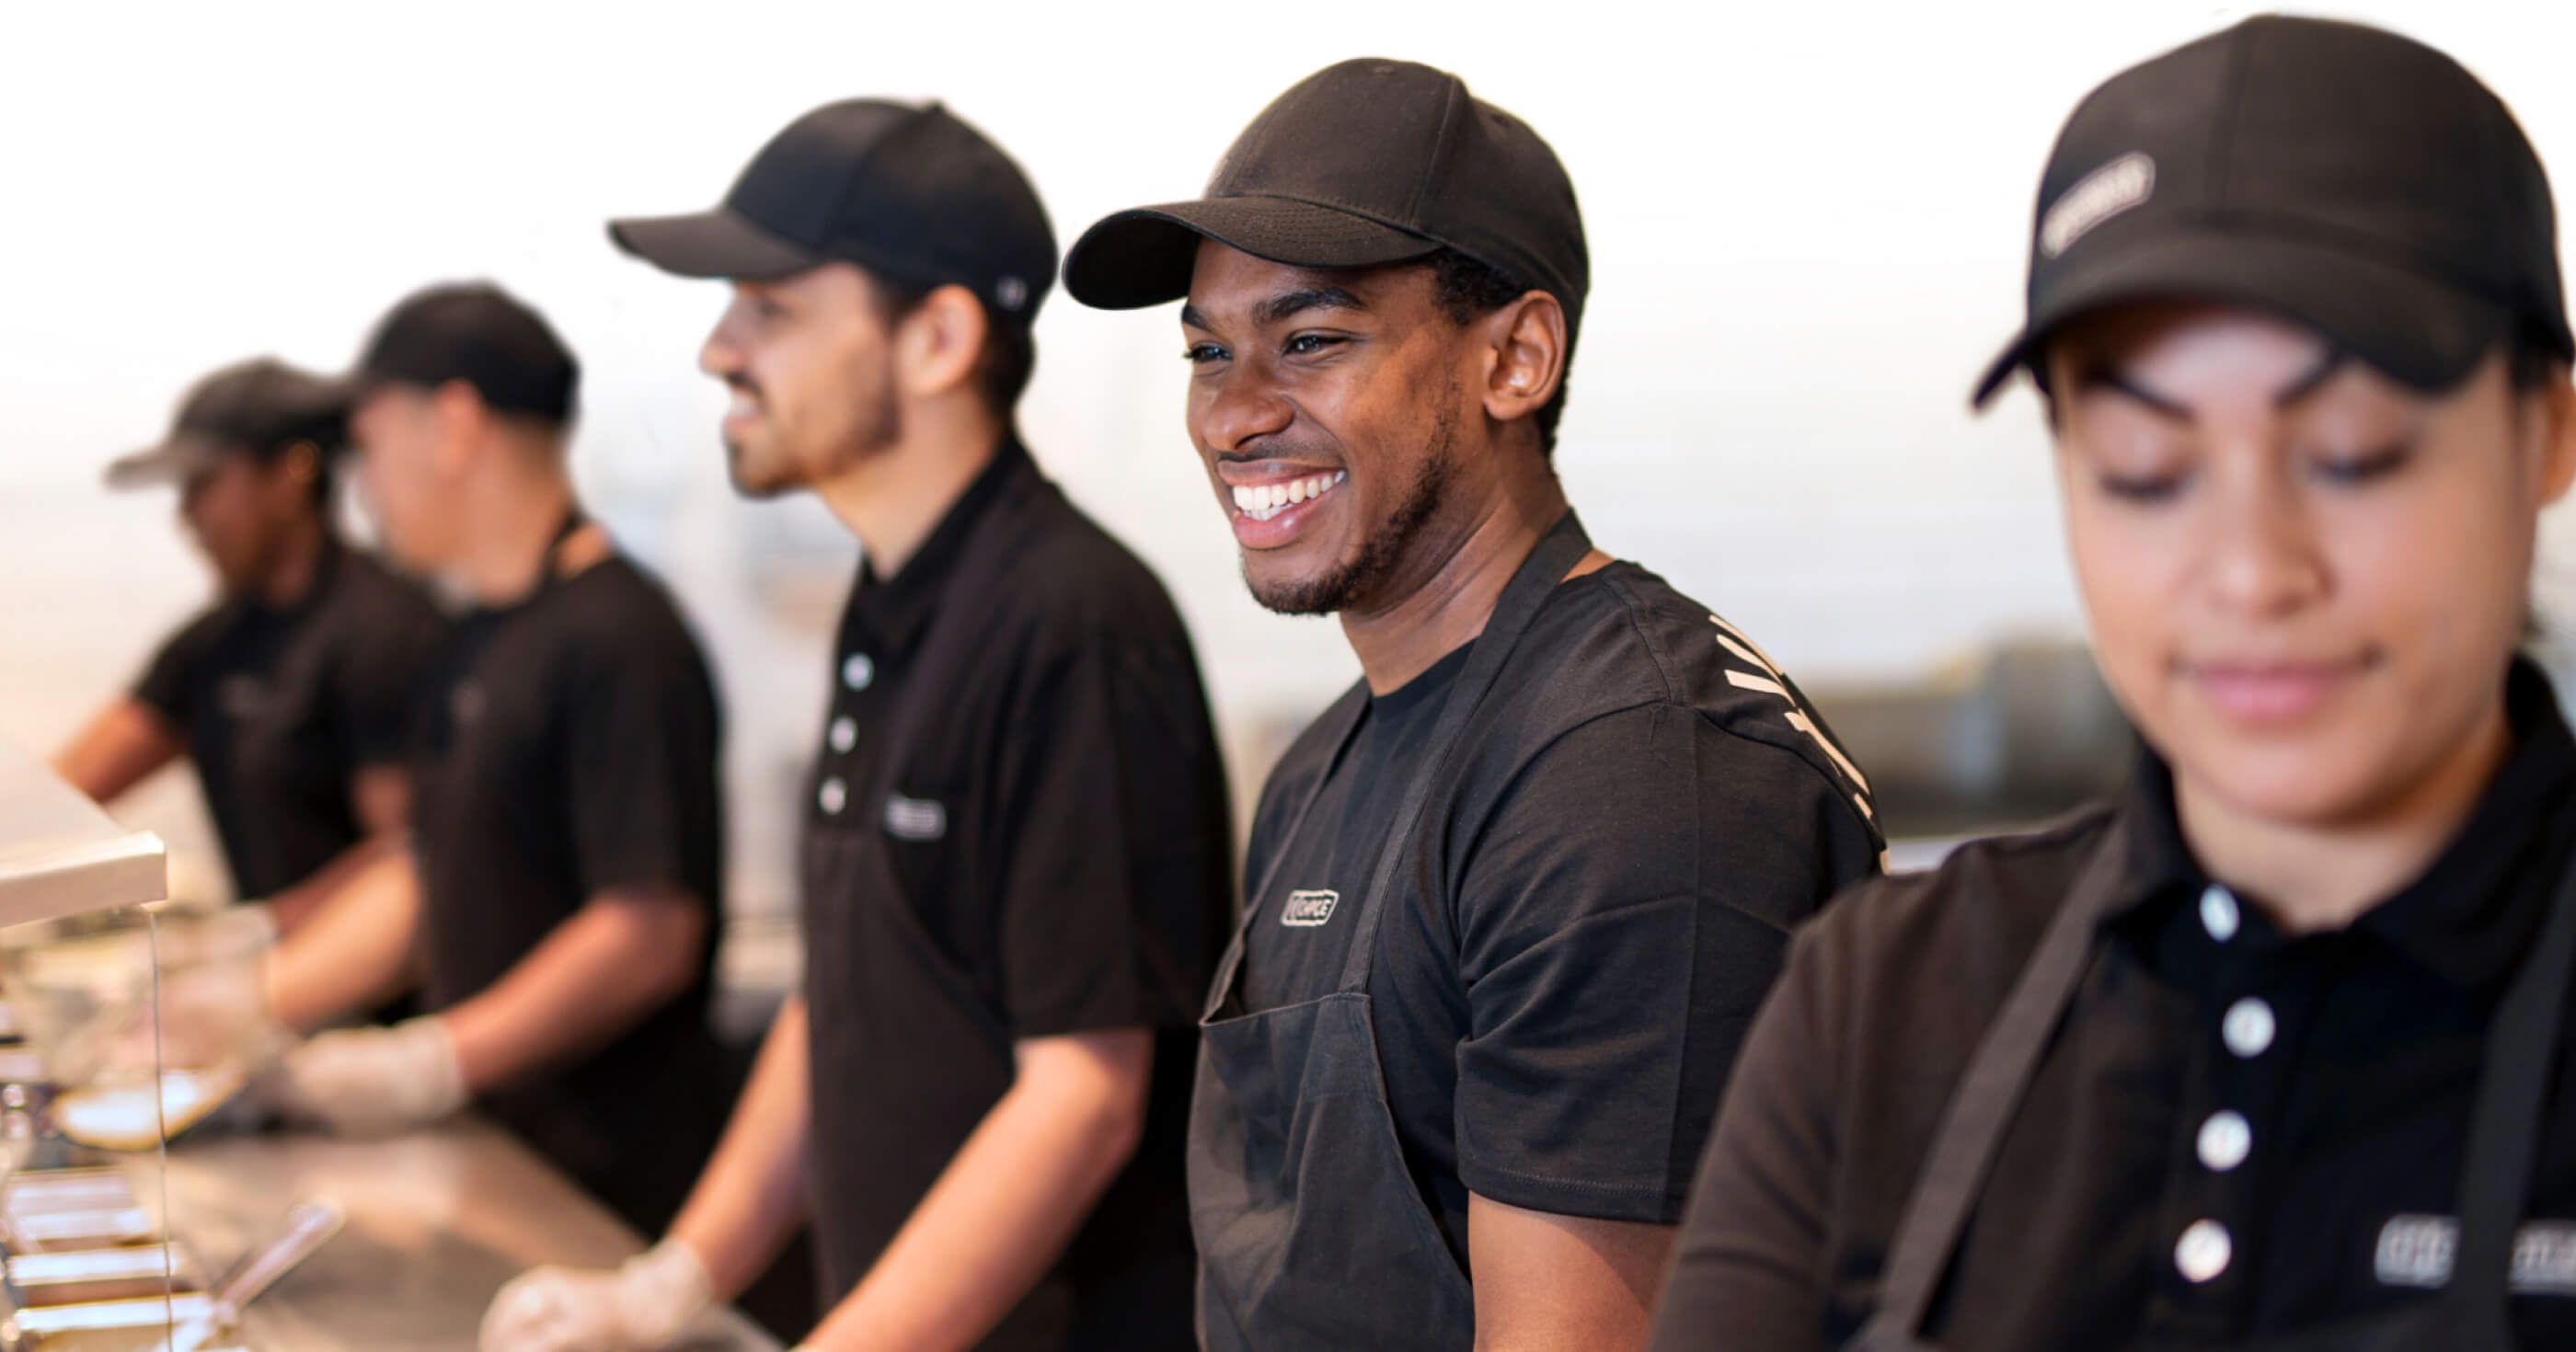 4 chipotle team members smiling